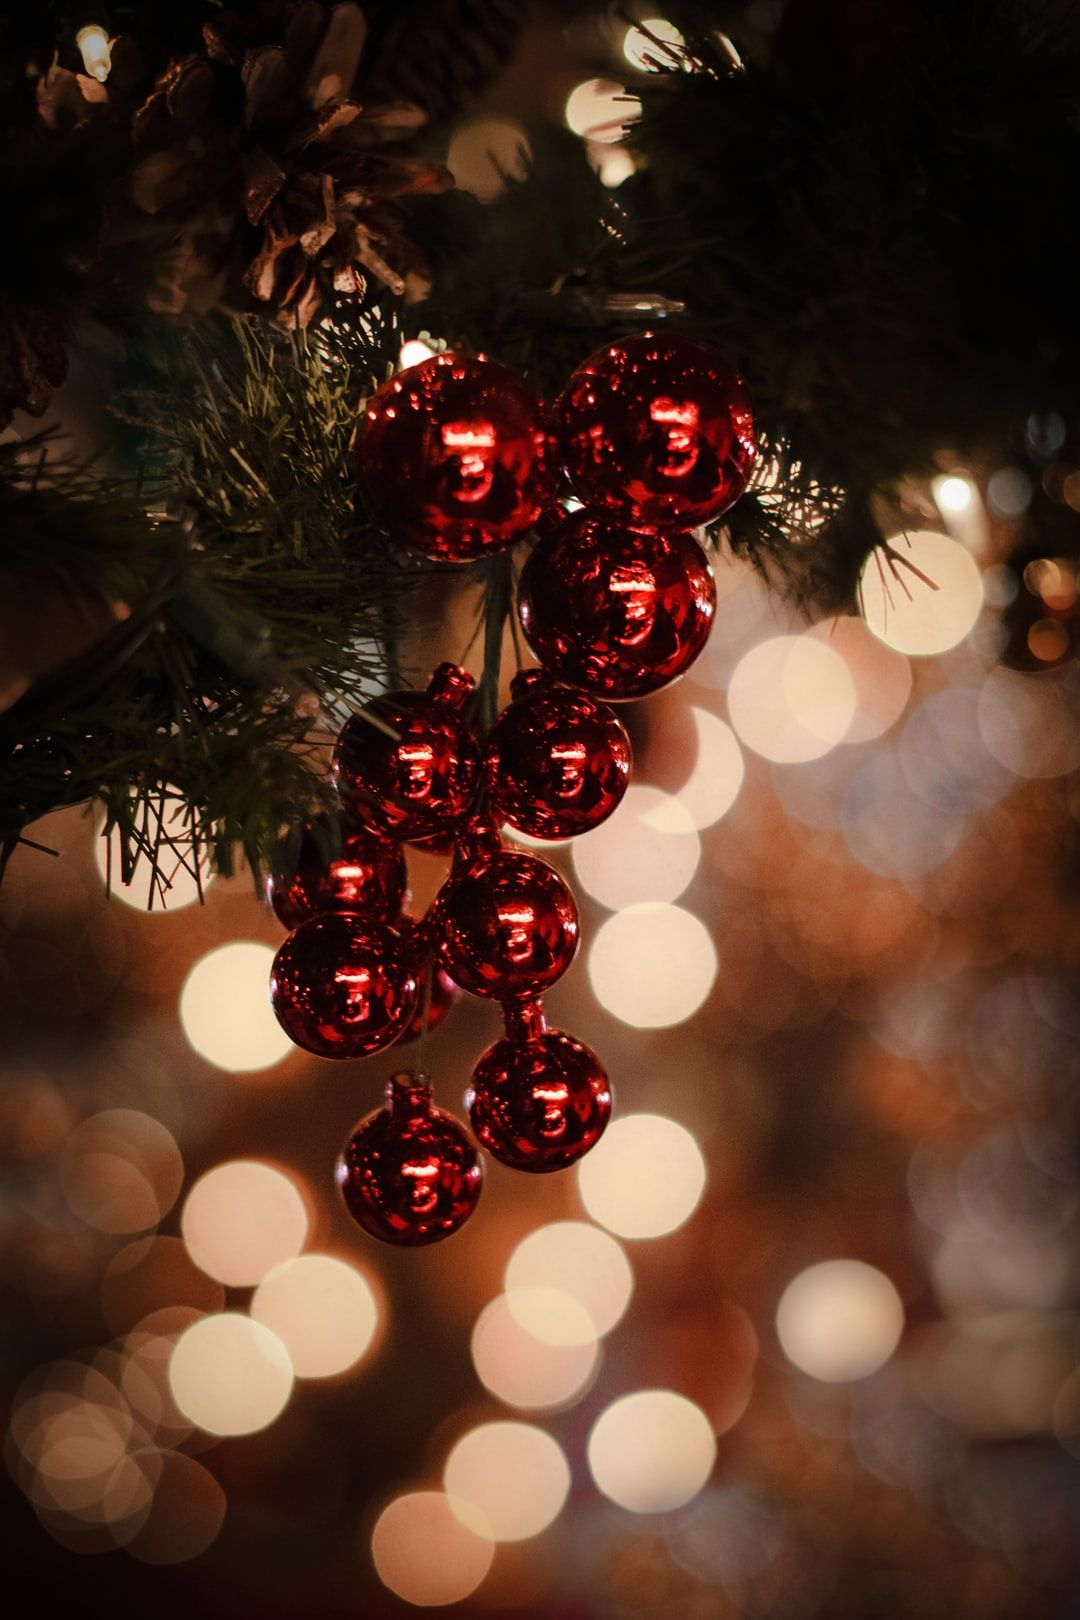 Macro Photography Of Red Christmas Baubles Photo Free Ornament Image On Unsplash Wallpaper Iphone Christmas Christmas Phone Wallpaper Christmas Wallpaper Hd